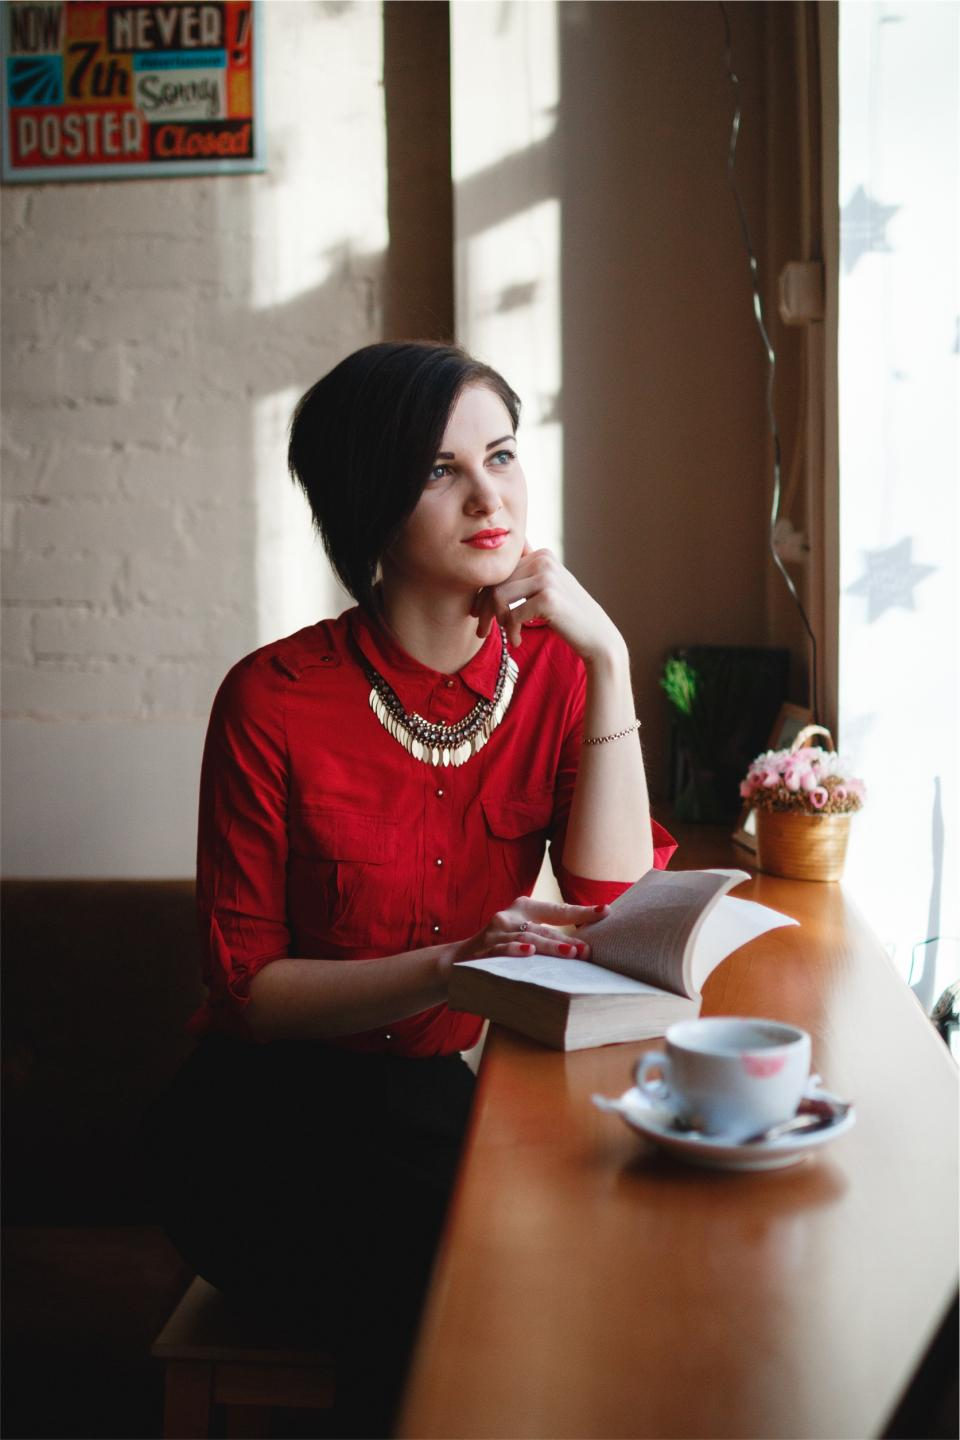 book reading girl woman pretty beautiful people fashion cafe coffee cup red shirt makeup thinking looking